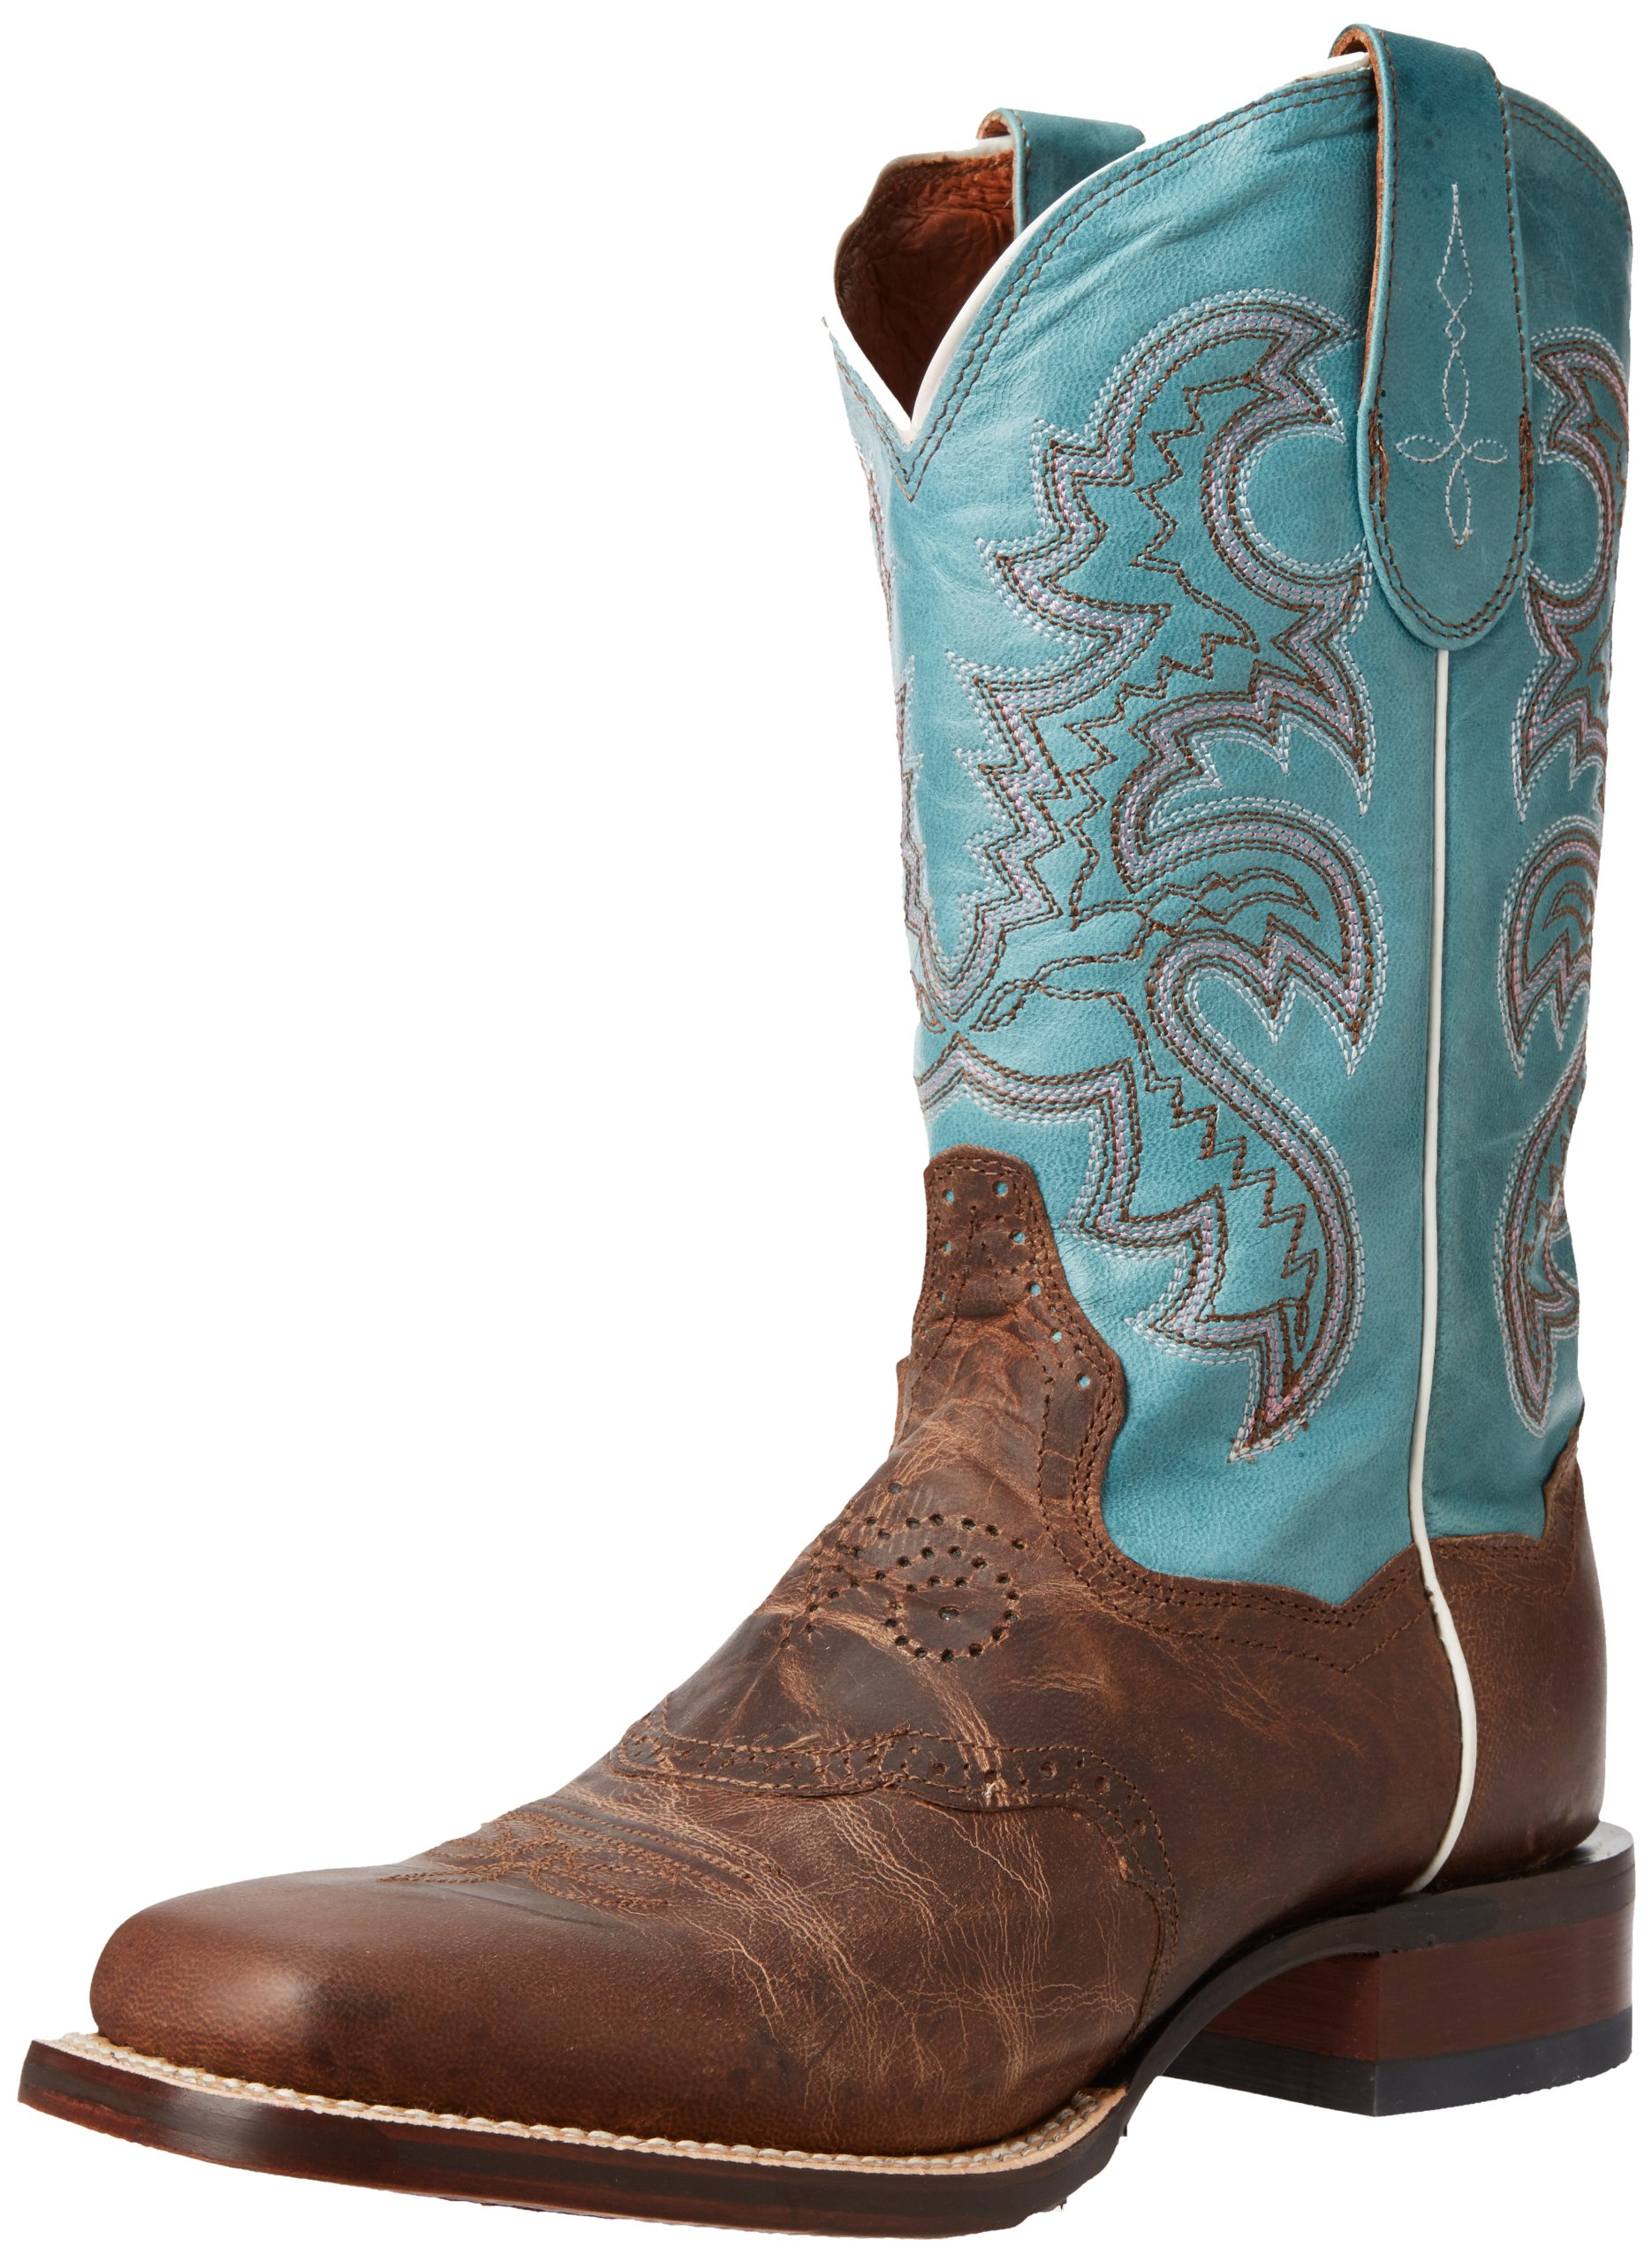 Dan Post Women's San Michelle Western Boot,Sand/Blue,8.5 M US